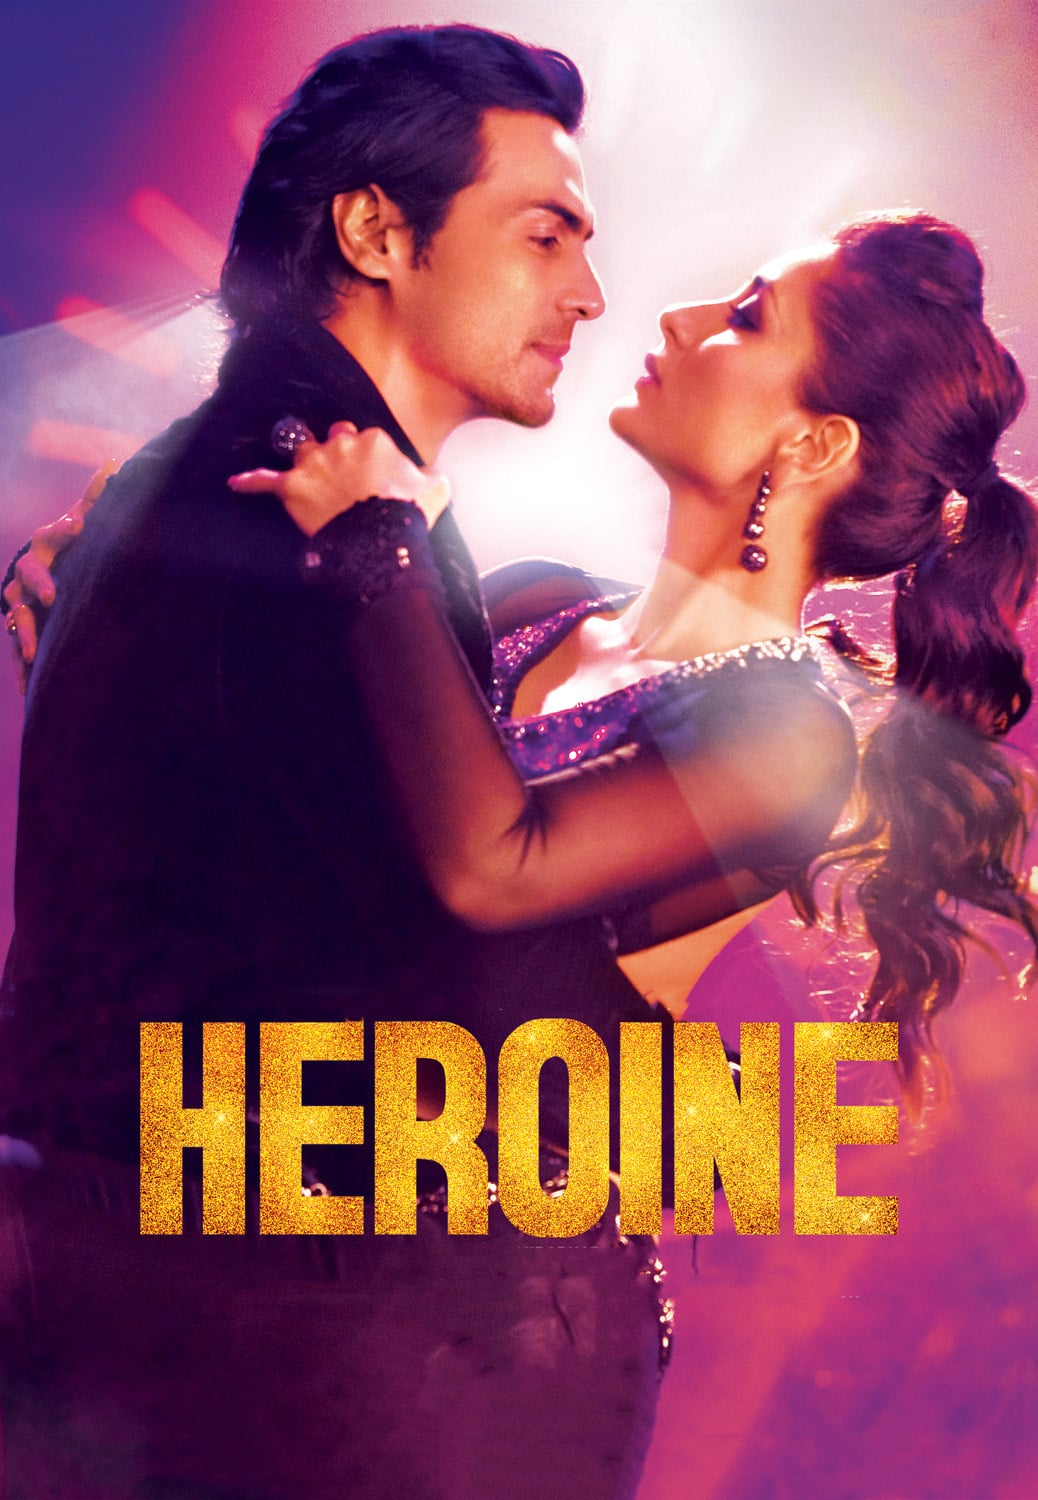 Heroine Movie Streaming Online Watch on Google Play, Netflix , Youtube, iTunes